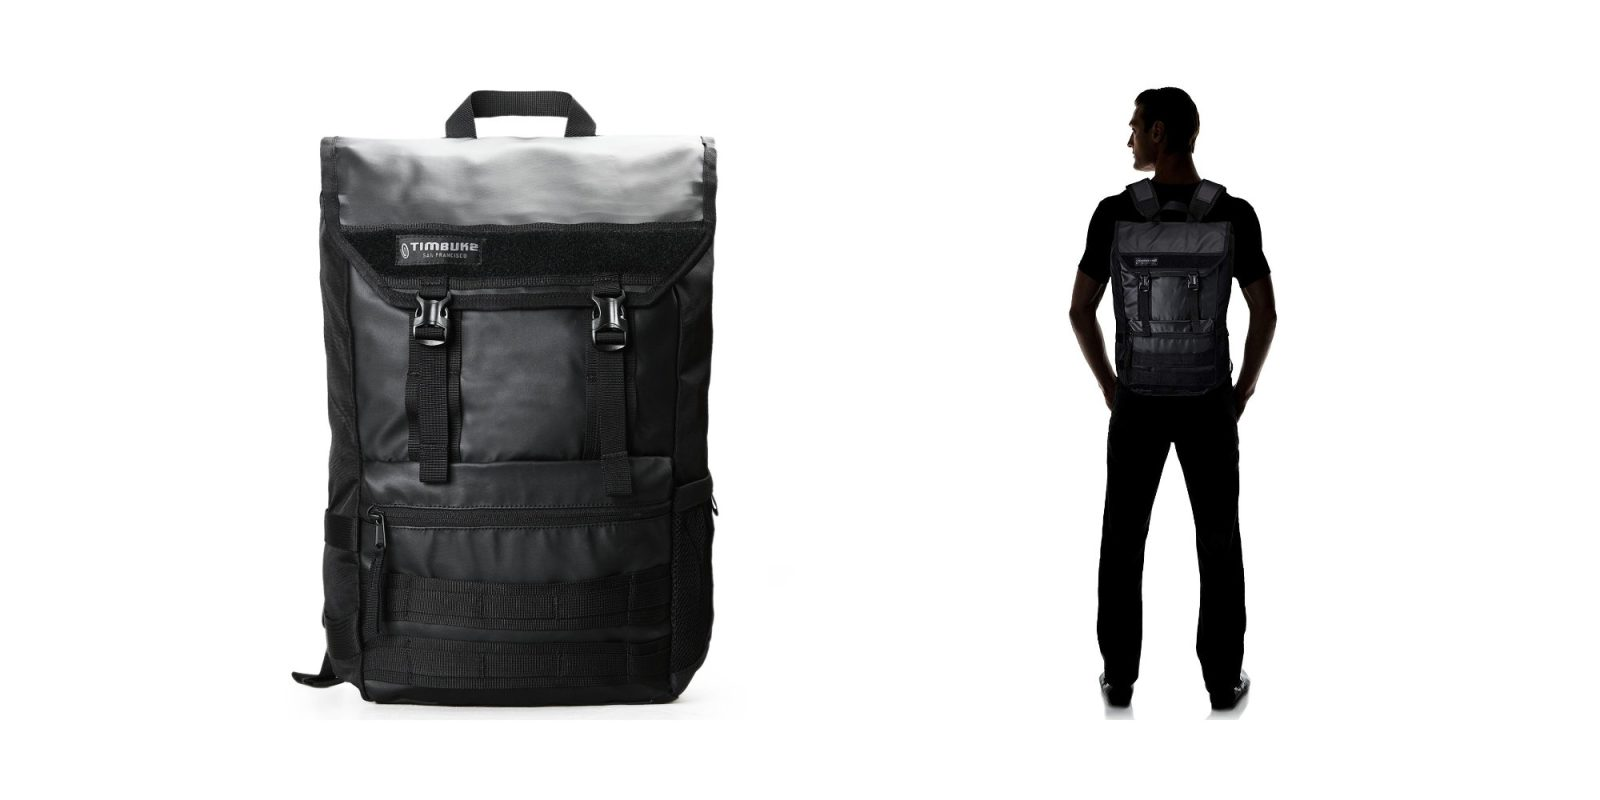 Amazon cuts 40% off Timbuk2's military-inspired, Mac-ready Backpack, now $48